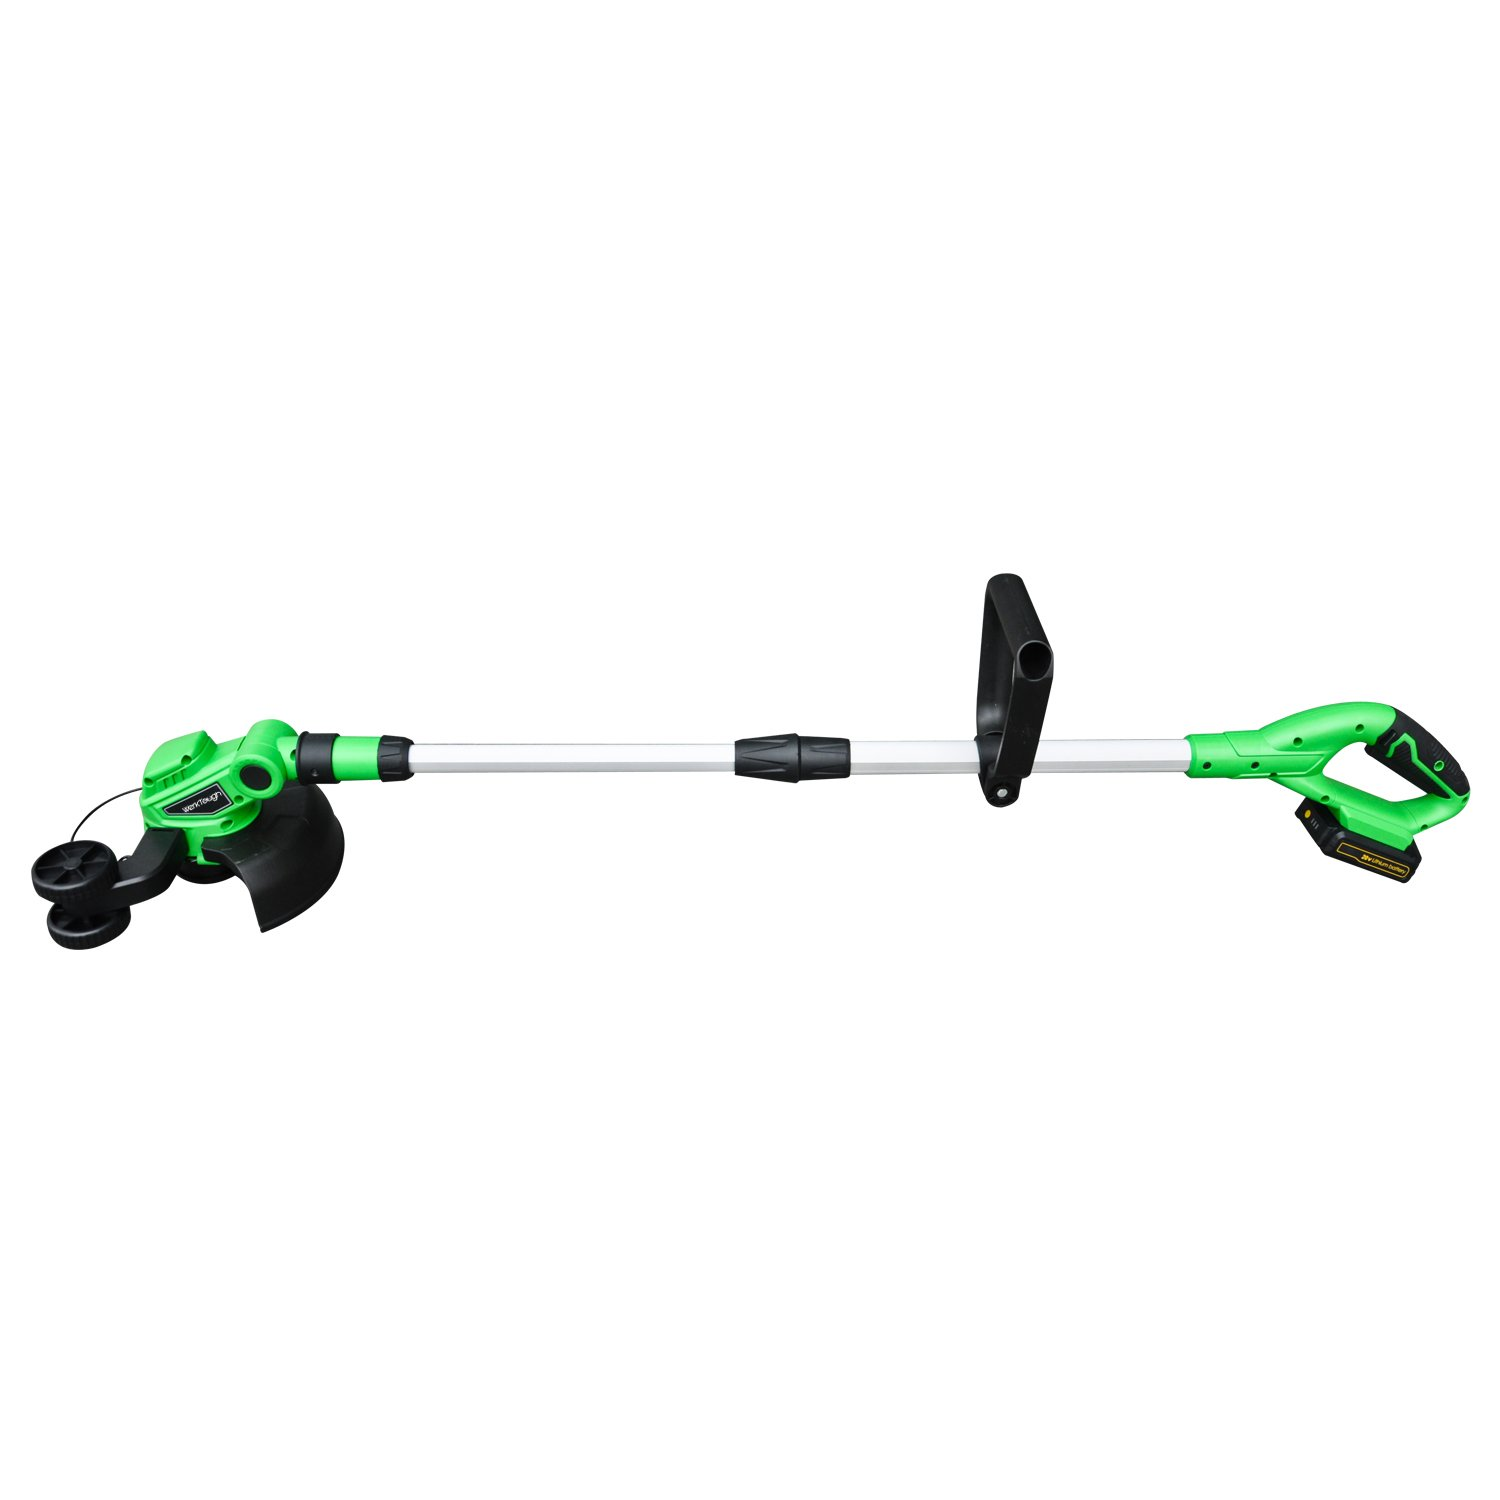 Werktough G001 20V Li-ion Easy Use Cordless String Grass Trimmer/Edger